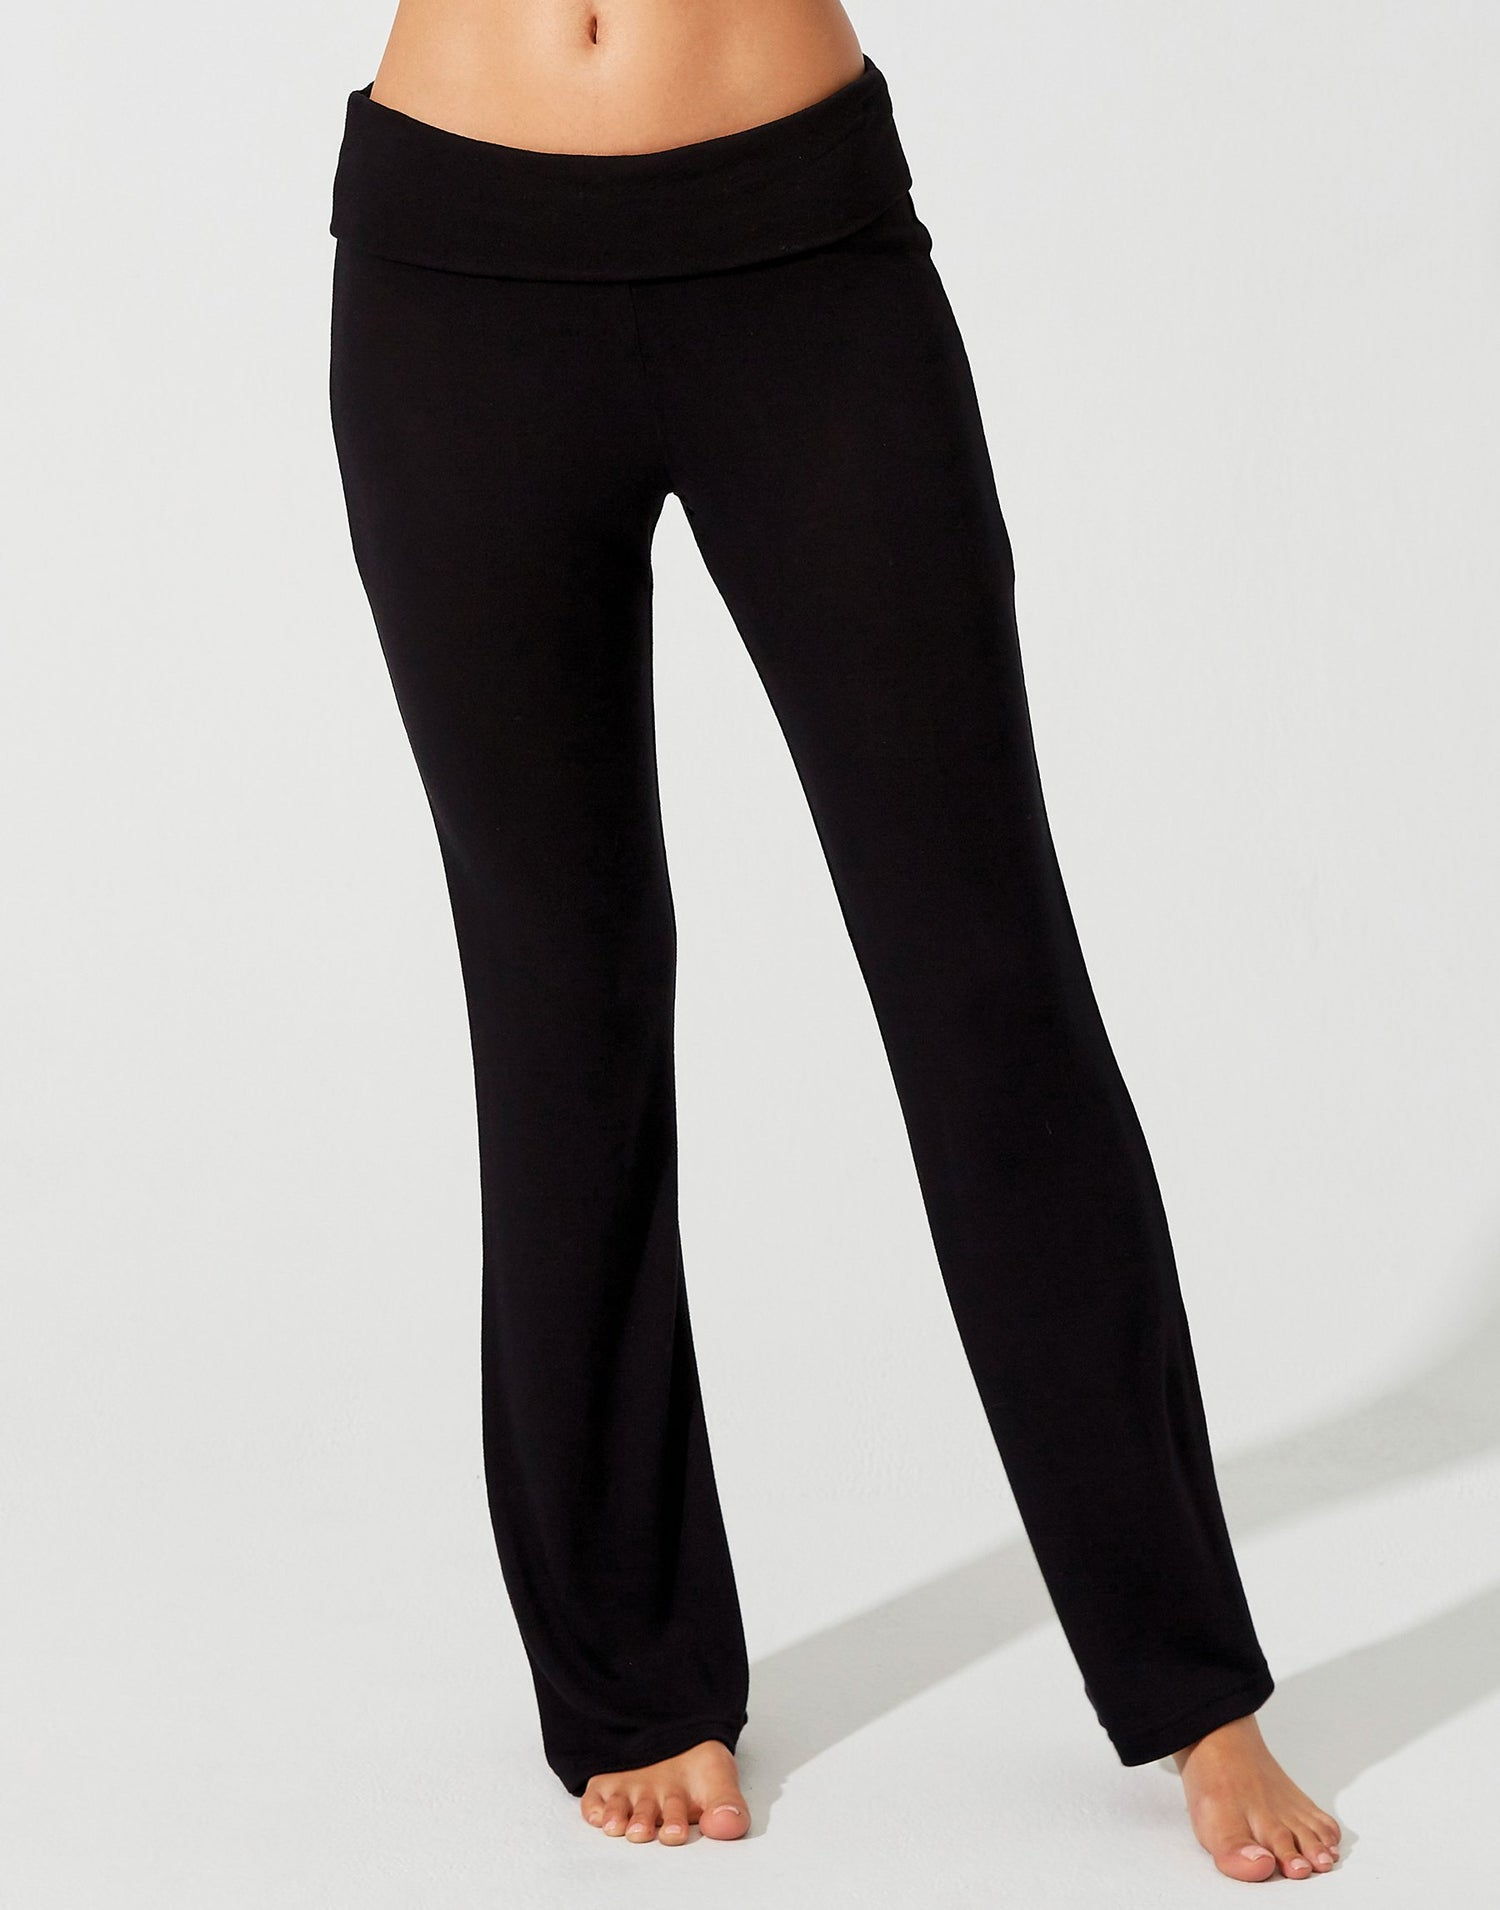 Lolo Pant in Black with Fold Over Waistband - alternate front view